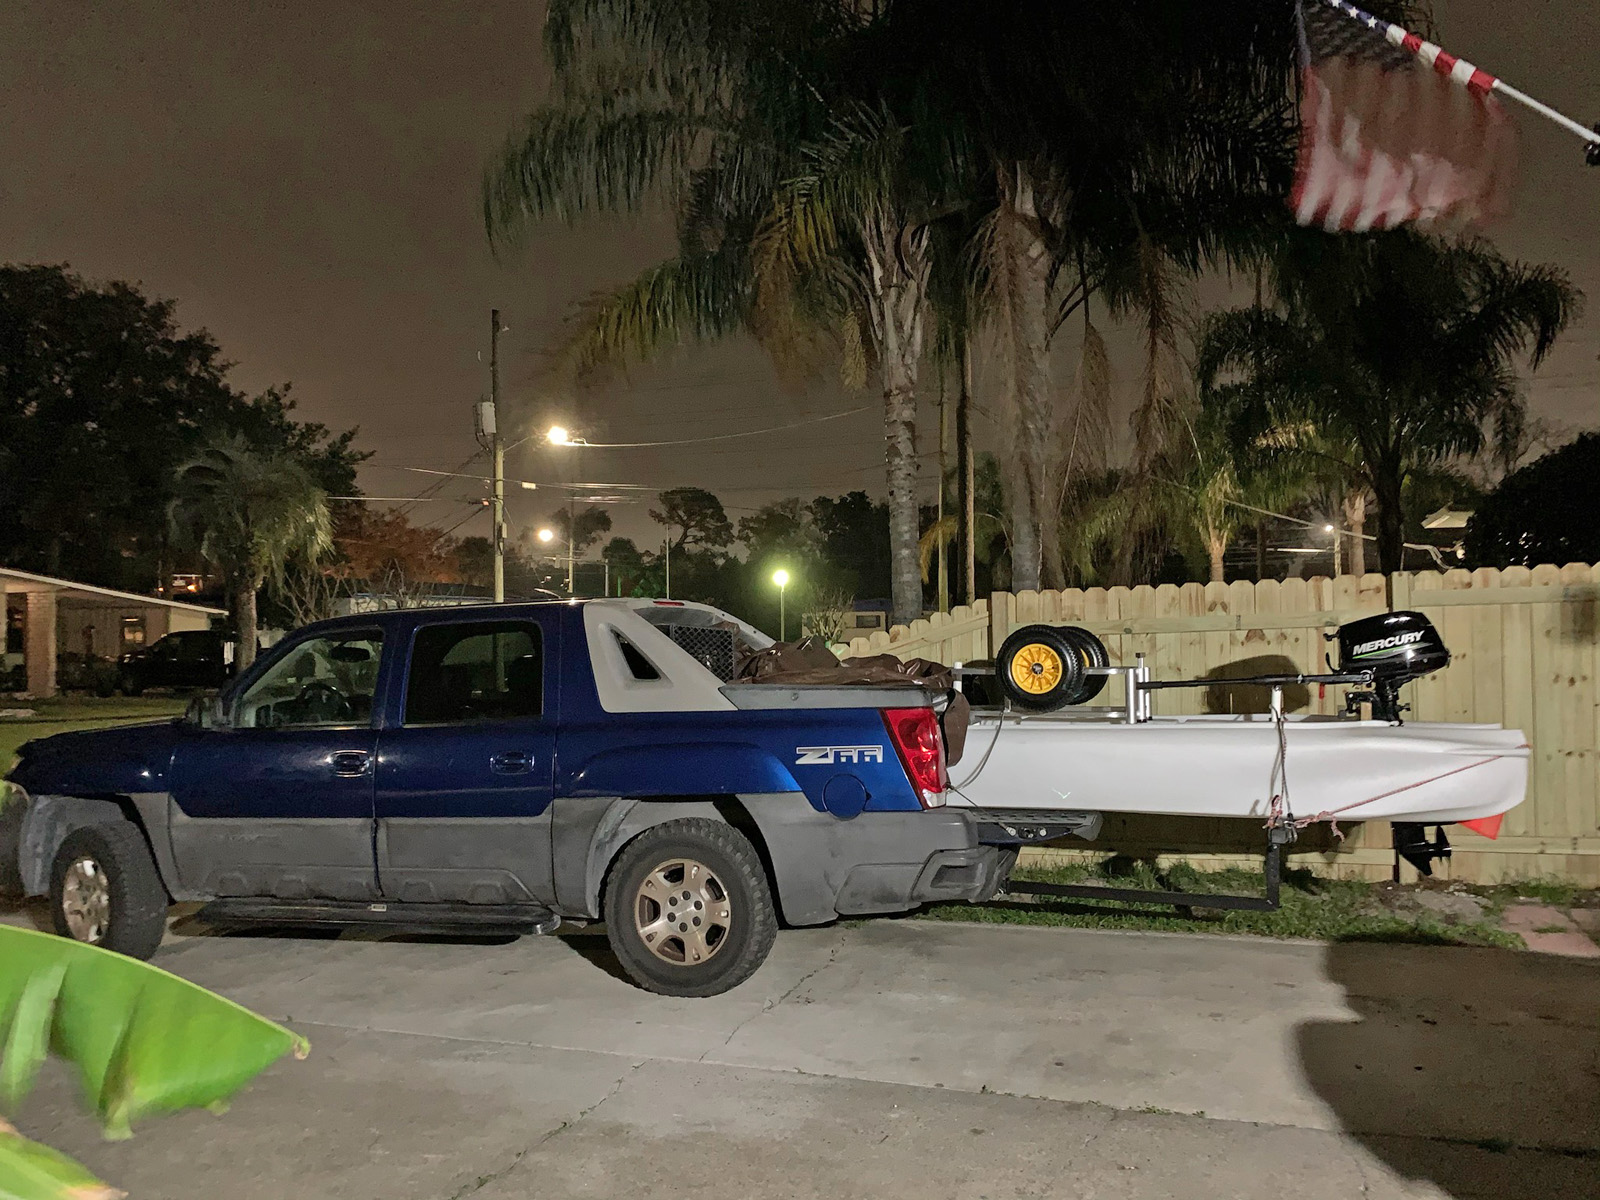 Pickup truck carrying Wavewalk S4 motor kayak skiff